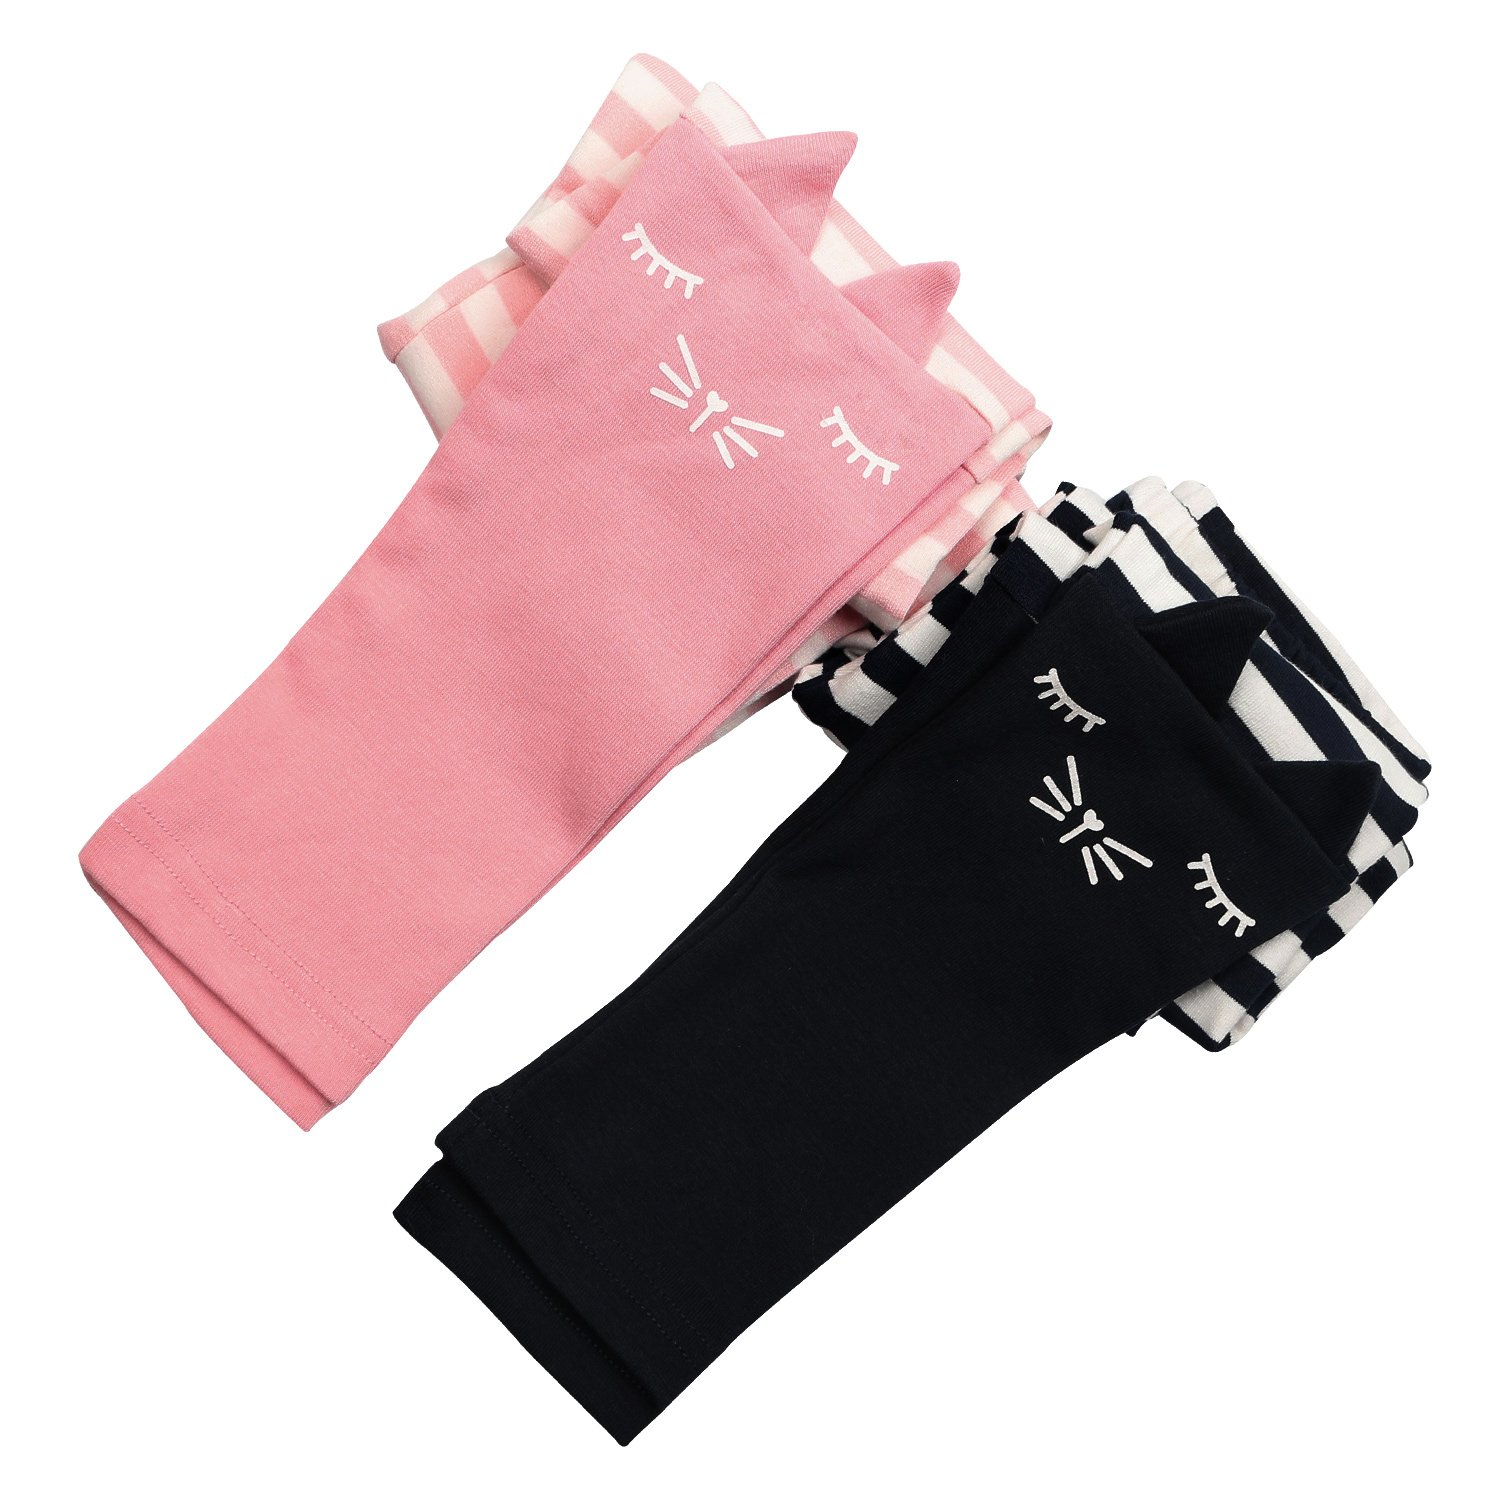 2 Pack Girls Pants Baby Toddler Girl Legging Cute Cat Striped Spliced Kids Pant Cotton Blended 5T by BOOPH (Image #4)